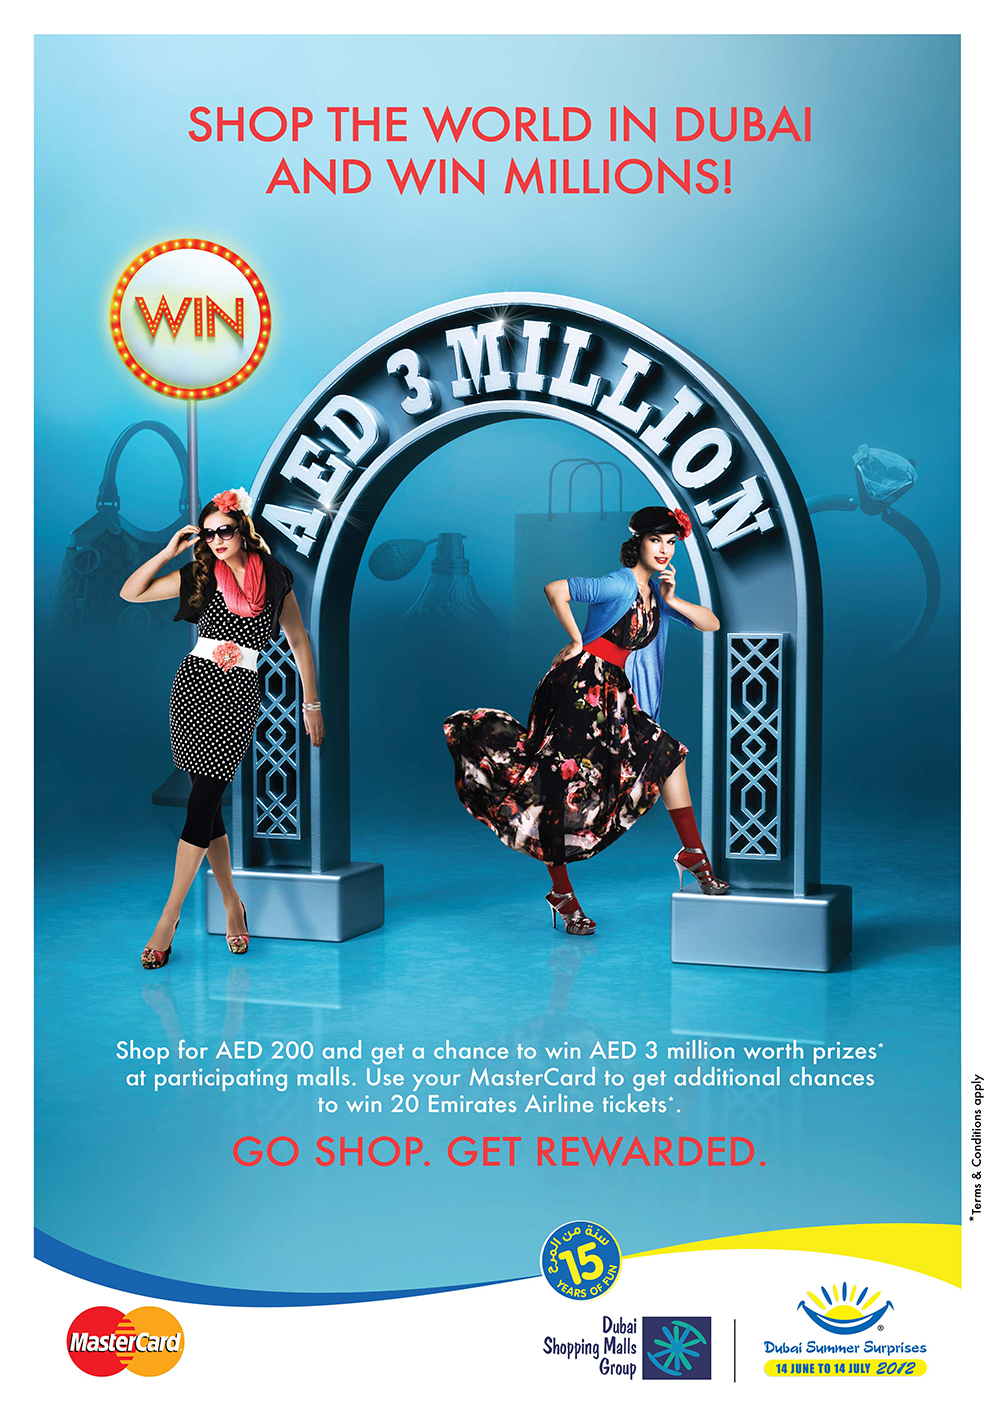 Shop and win win millions 2012 (Promotion)